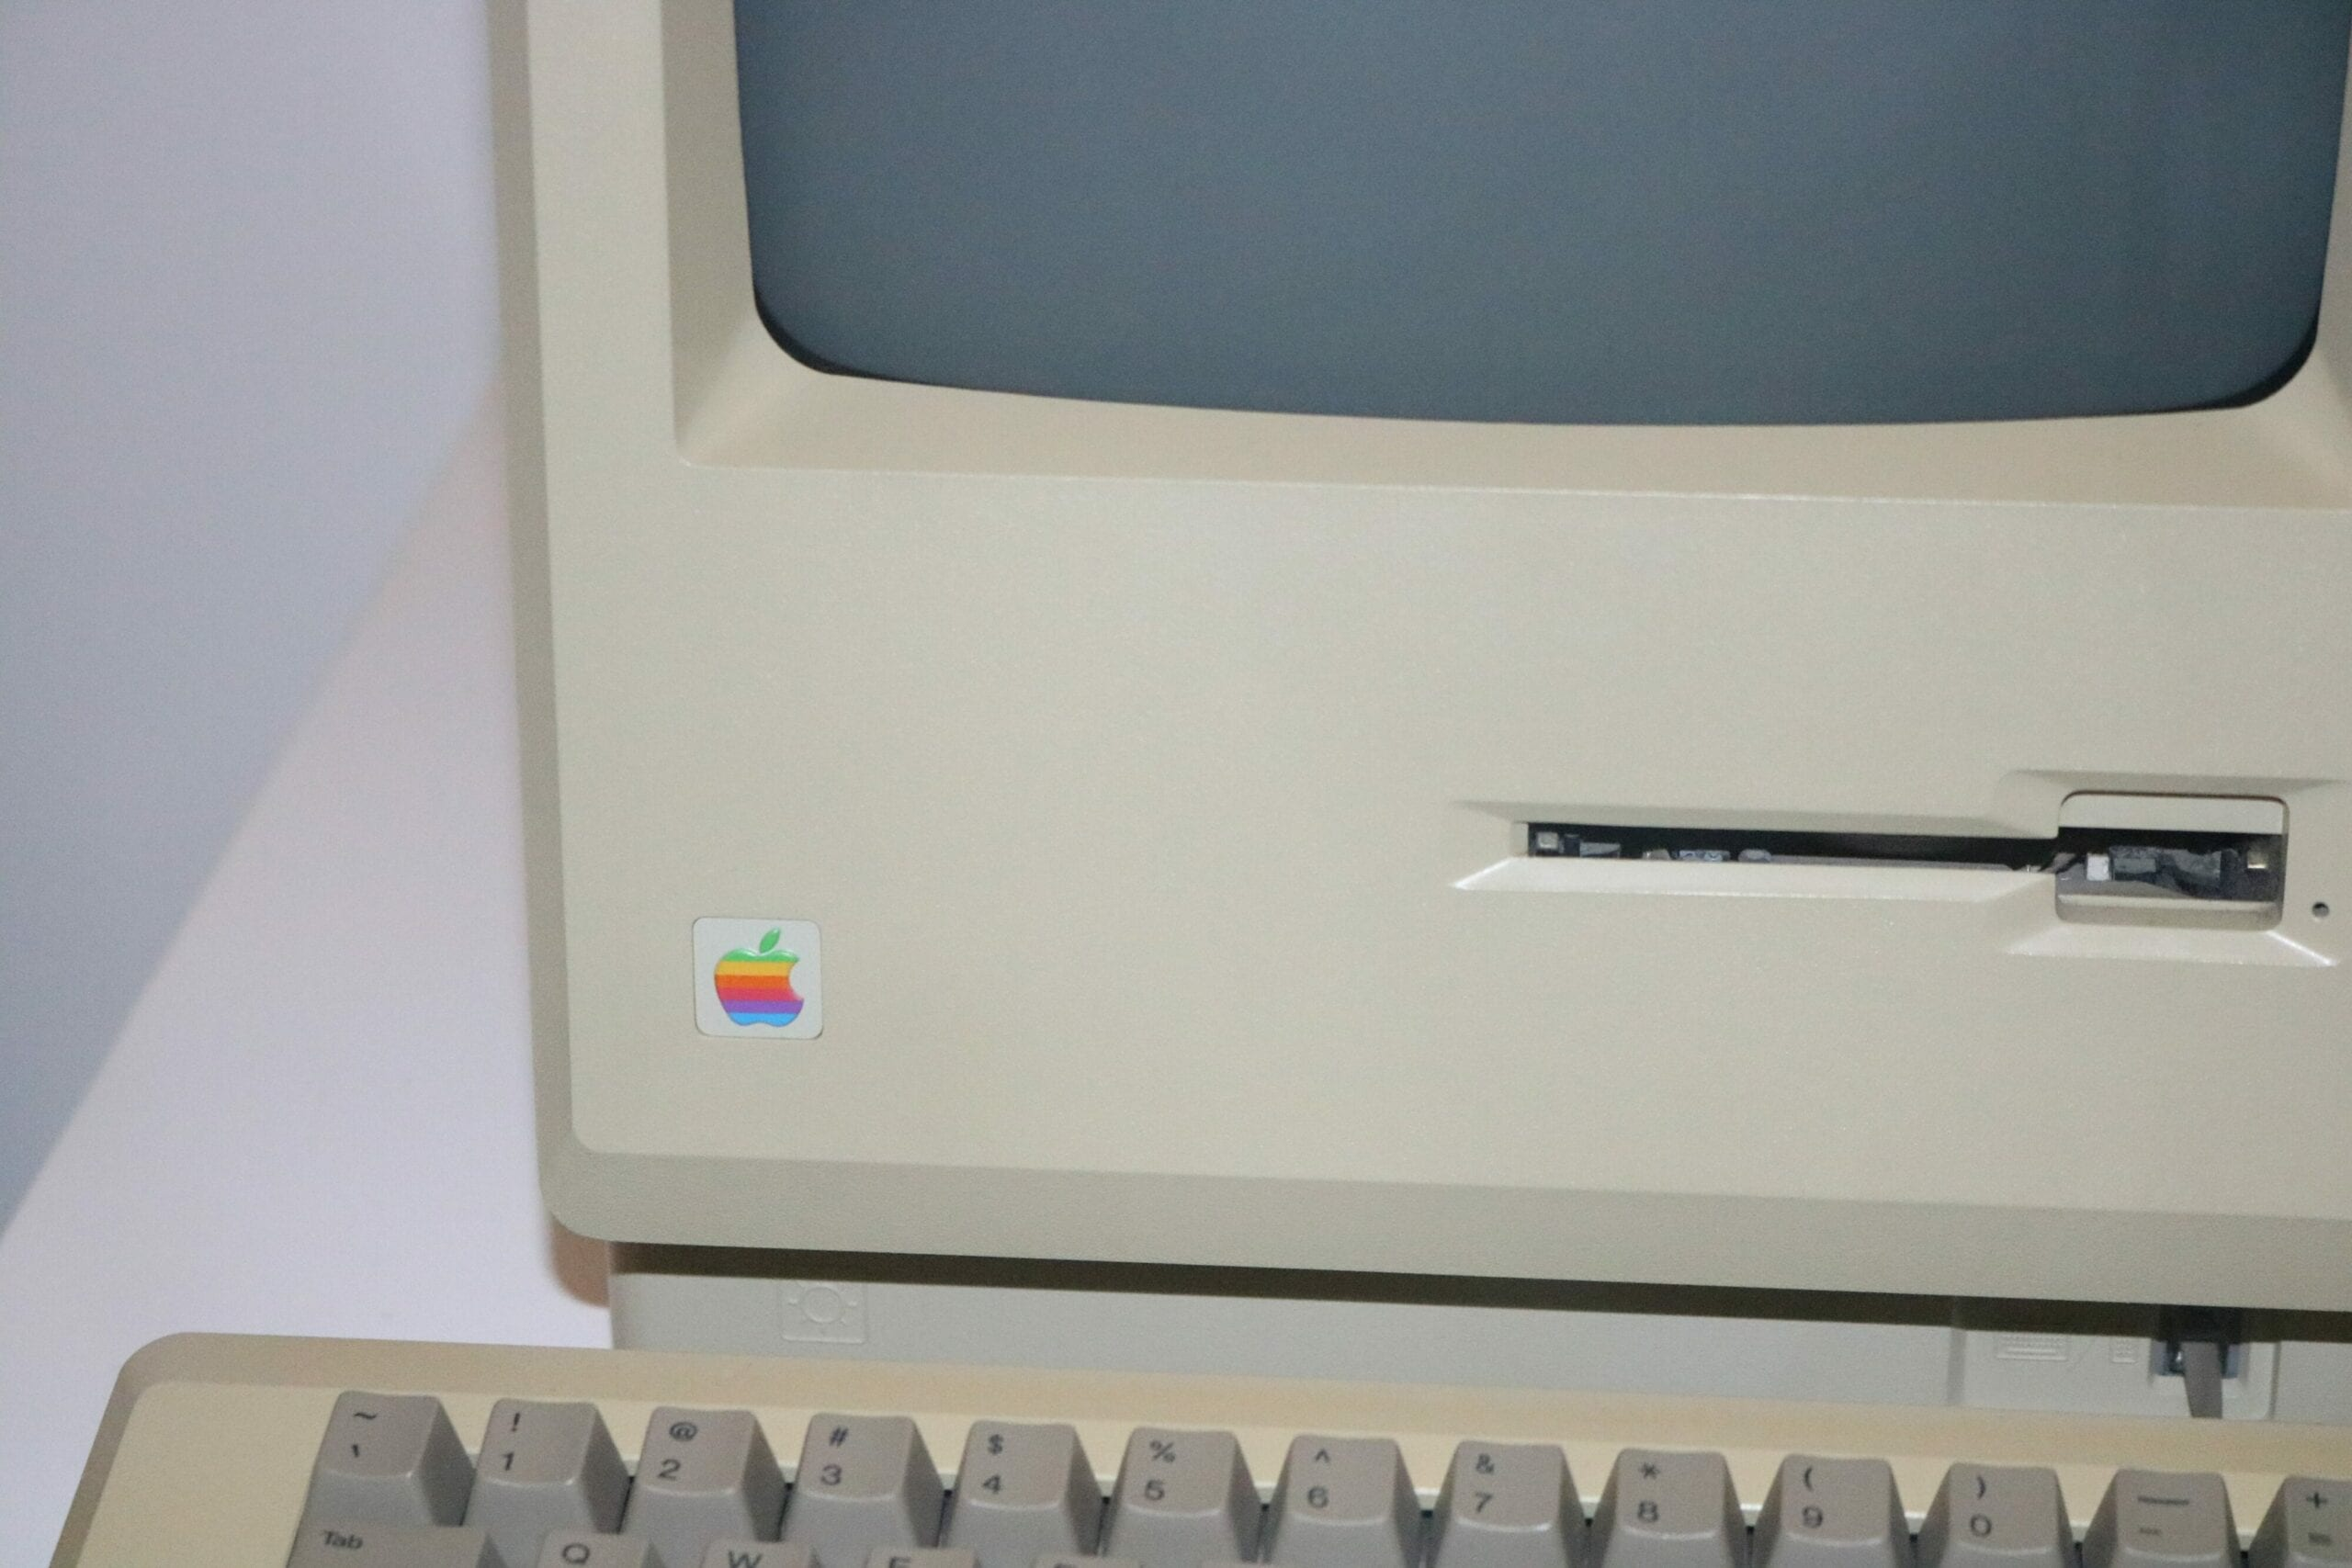 An older Mac illustrating the change in the web design process as compared to the 90s and 00s